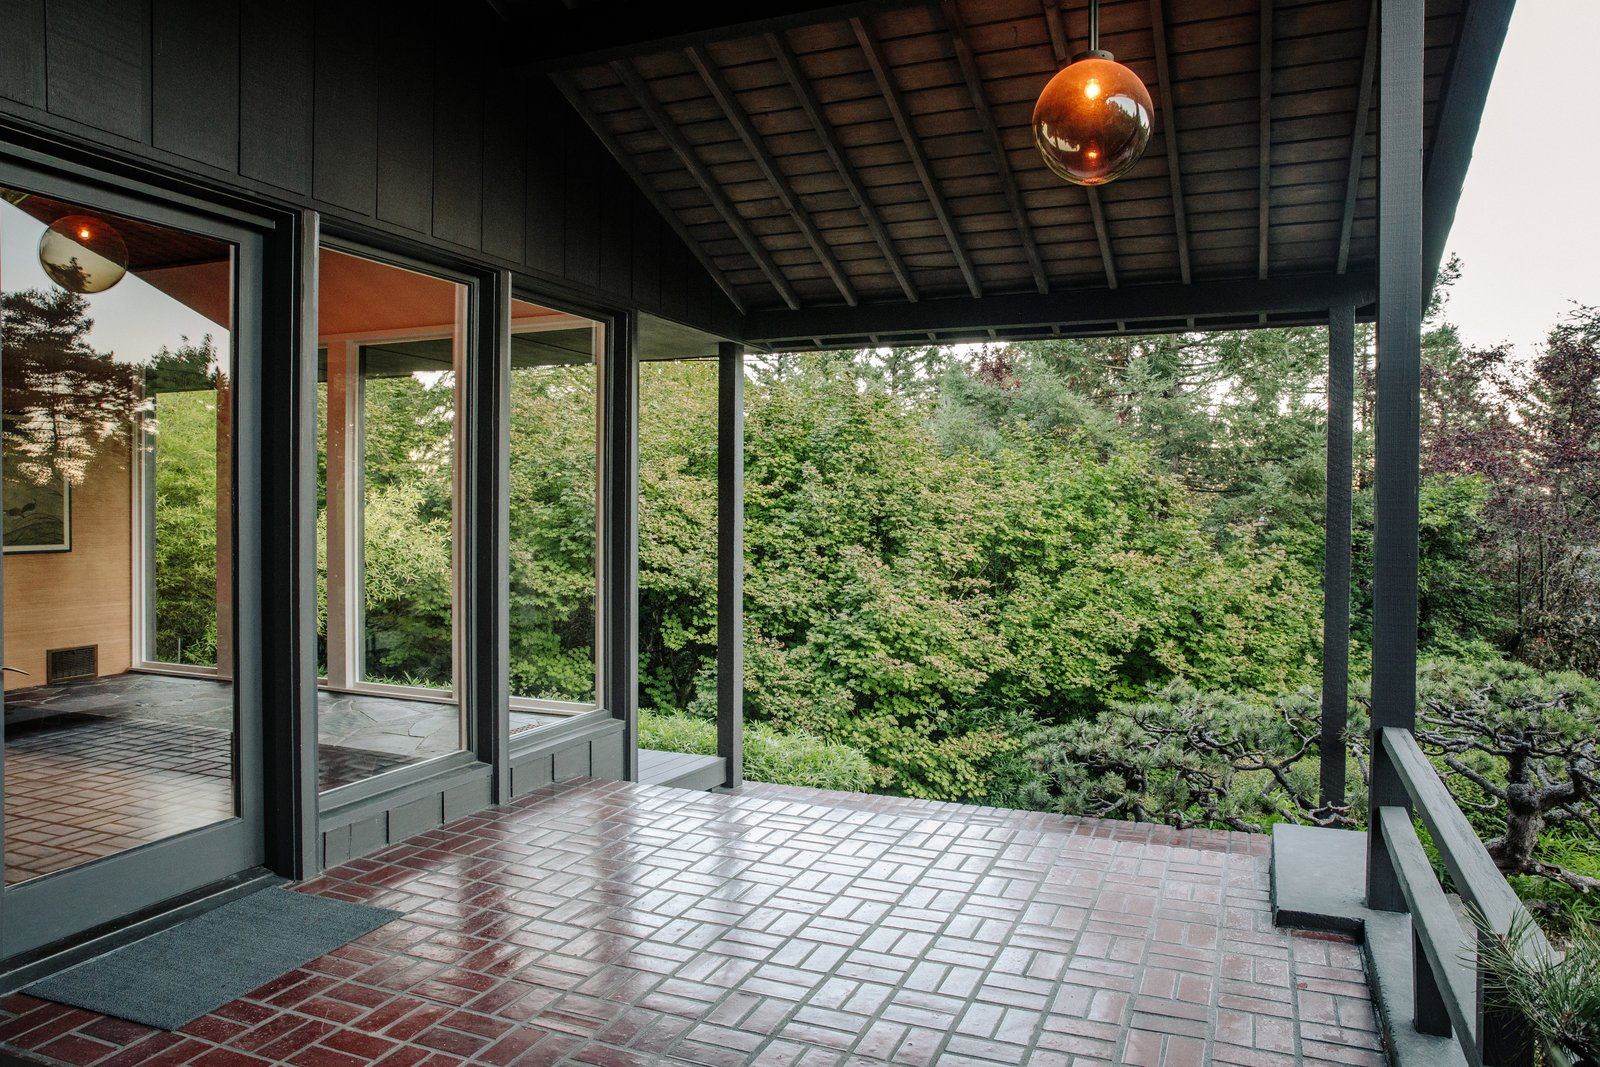 Outdoor, Trees, and Pavers Patio, Porch, Deck The front porch, clad with floor-to-ceiling glass windows, illuminates the foyer inside.  Photo 13 of 15 in Nearly 80 Years Later, an Architect Rescues a Japanese-Inspired  Masterwork Designed by His Father